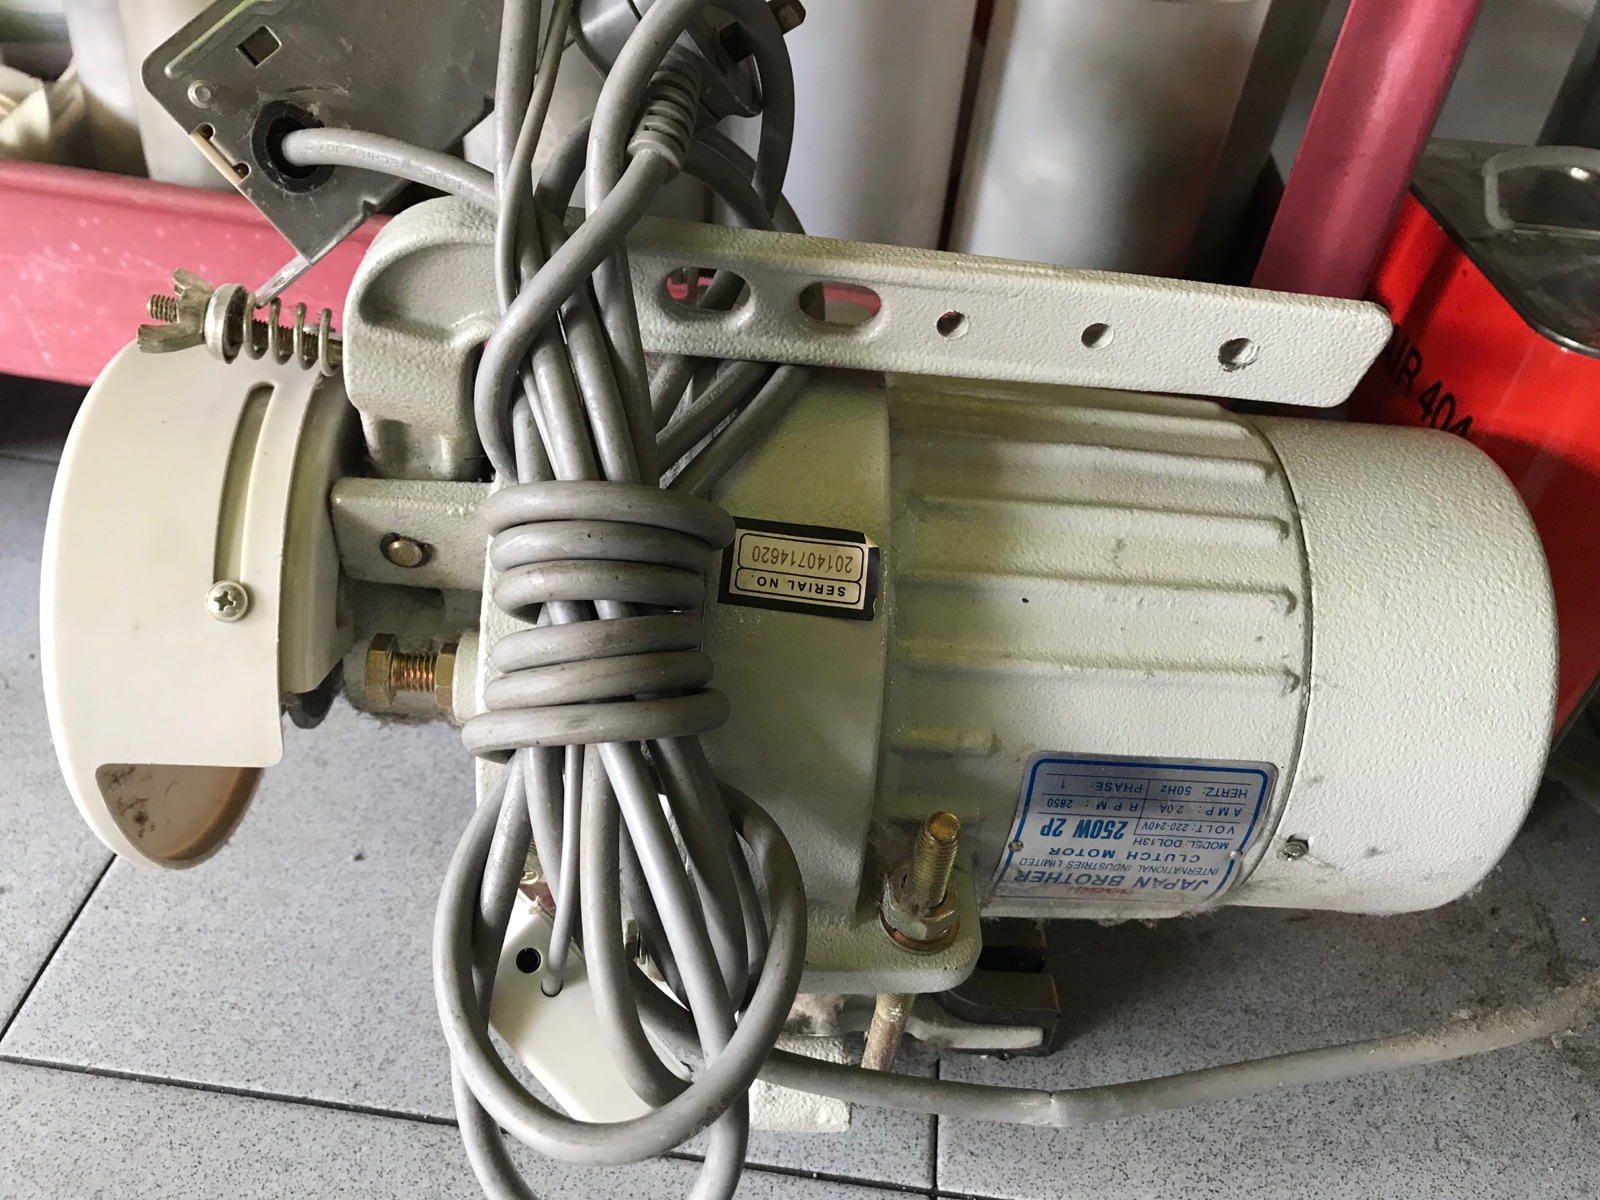 Repair Hi Speed Sewing Machine Motor